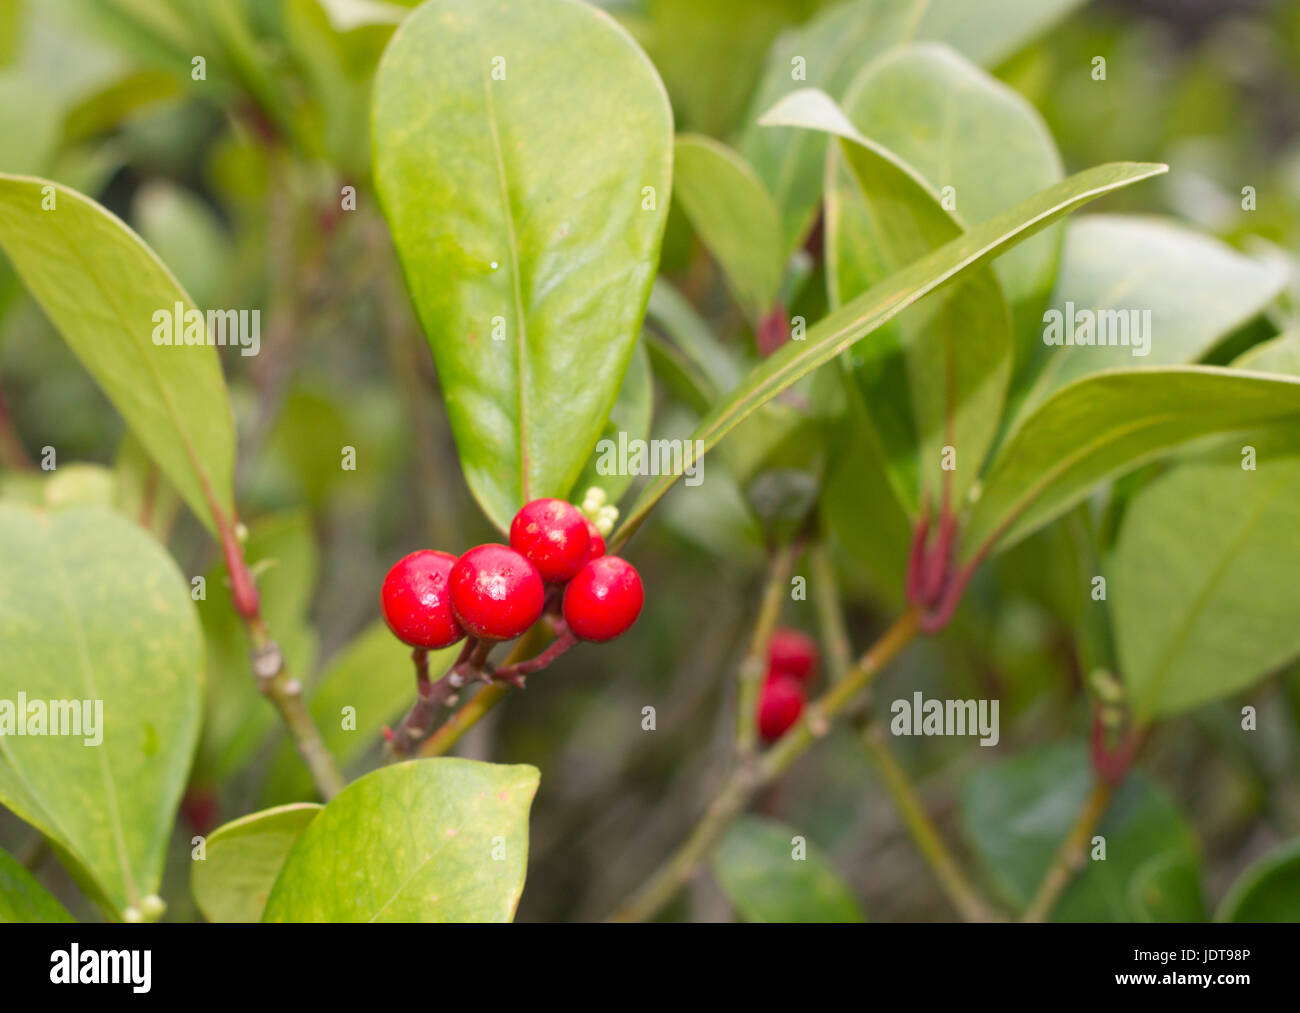 skimmia japonica pflanze mit bl ttern und roten beeren japanische sorbus stockfoto bild. Black Bedroom Furniture Sets. Home Design Ideas